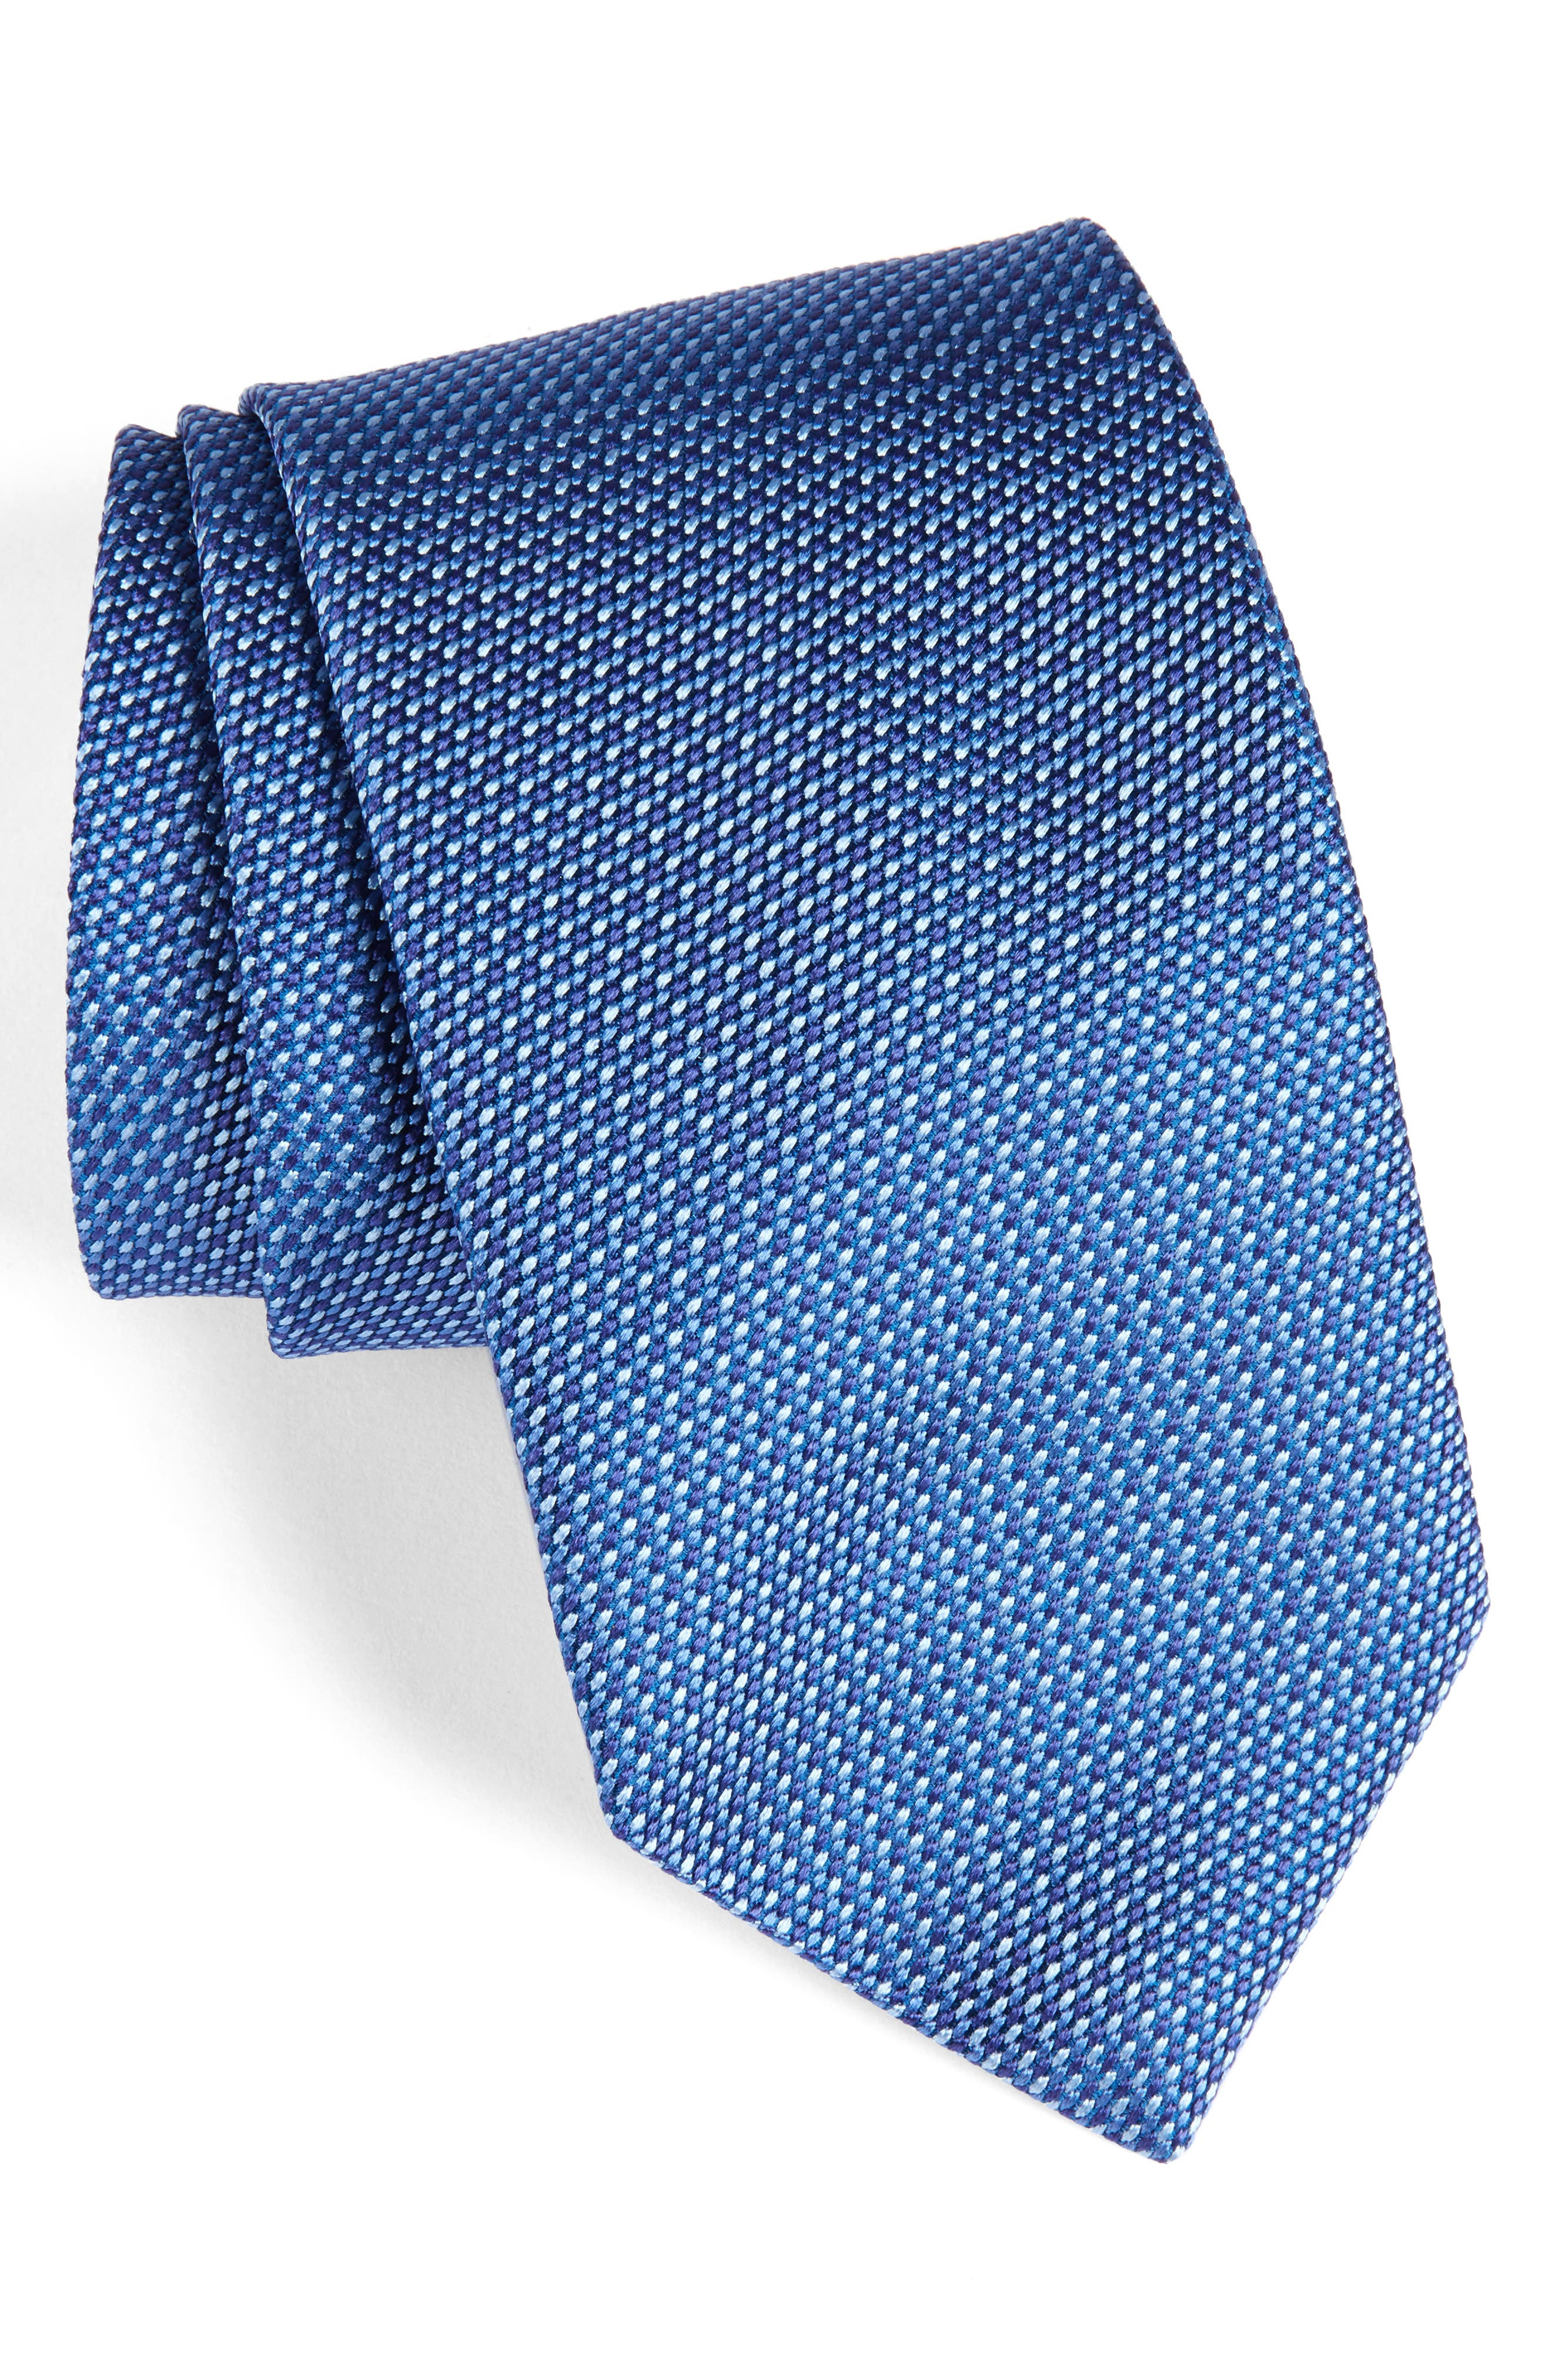 Solid Silk Tie,                             Main thumbnail 1, color,                             423